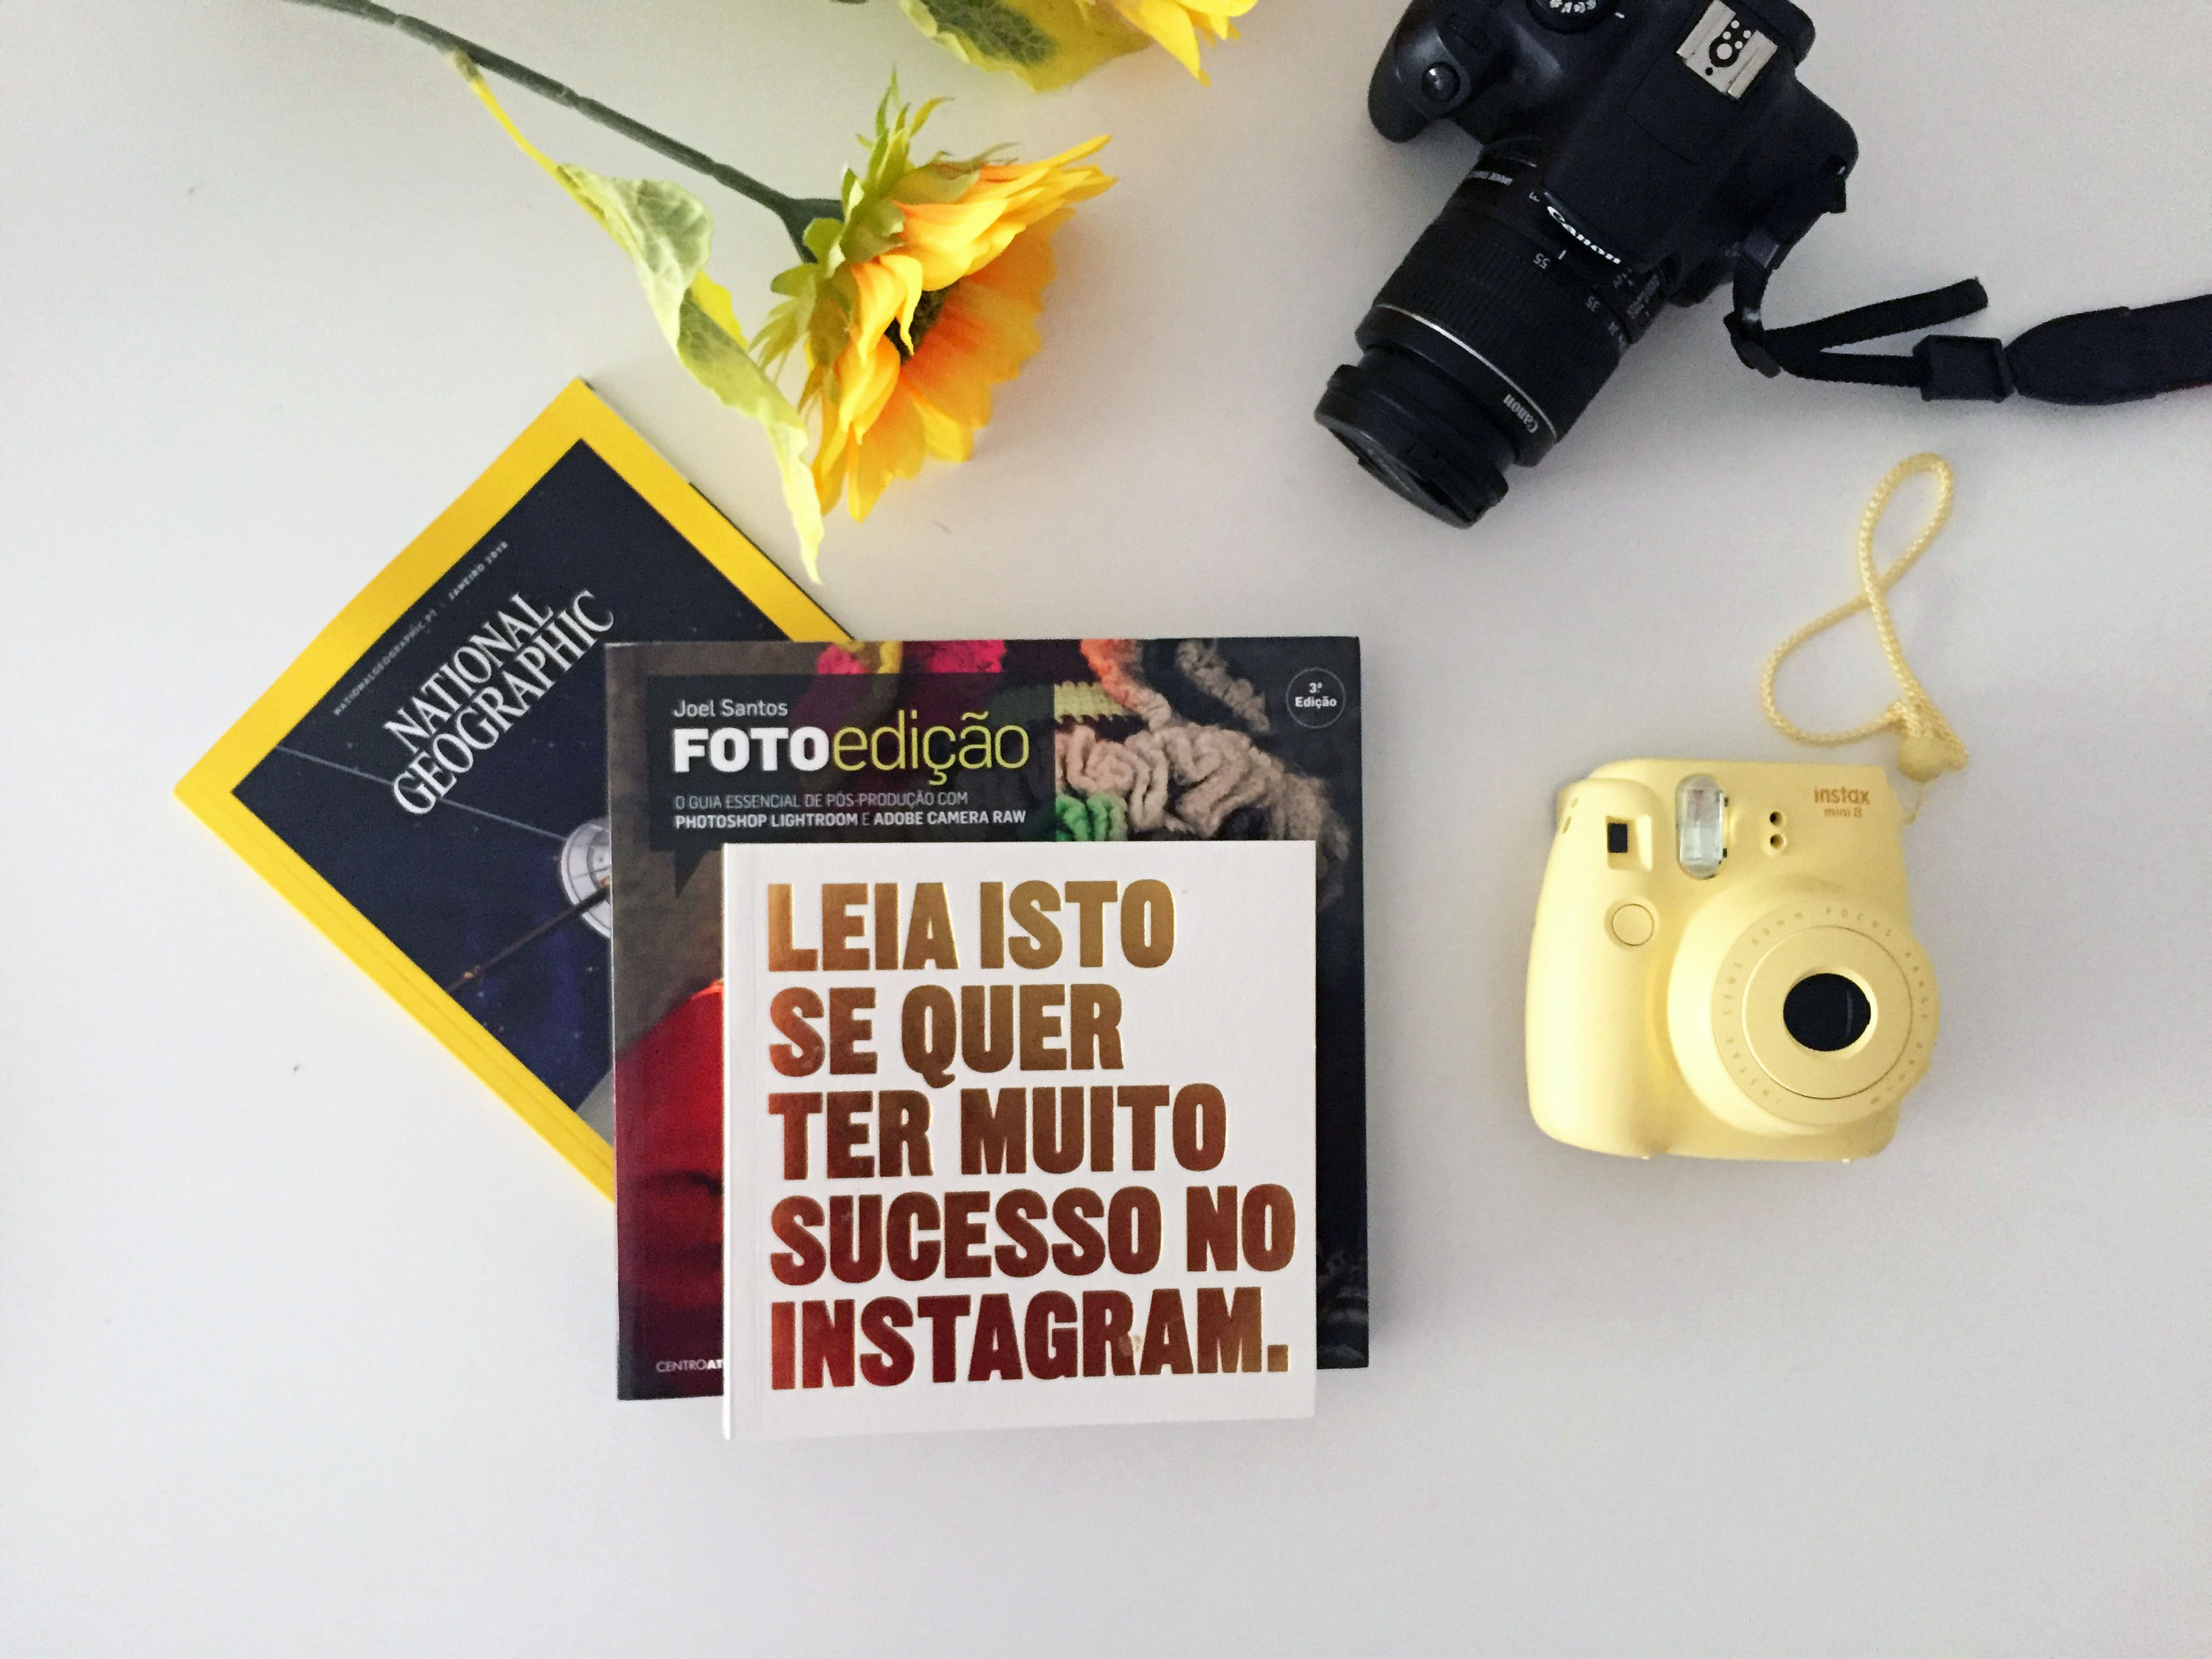 Fotografia: do papel ao instagram